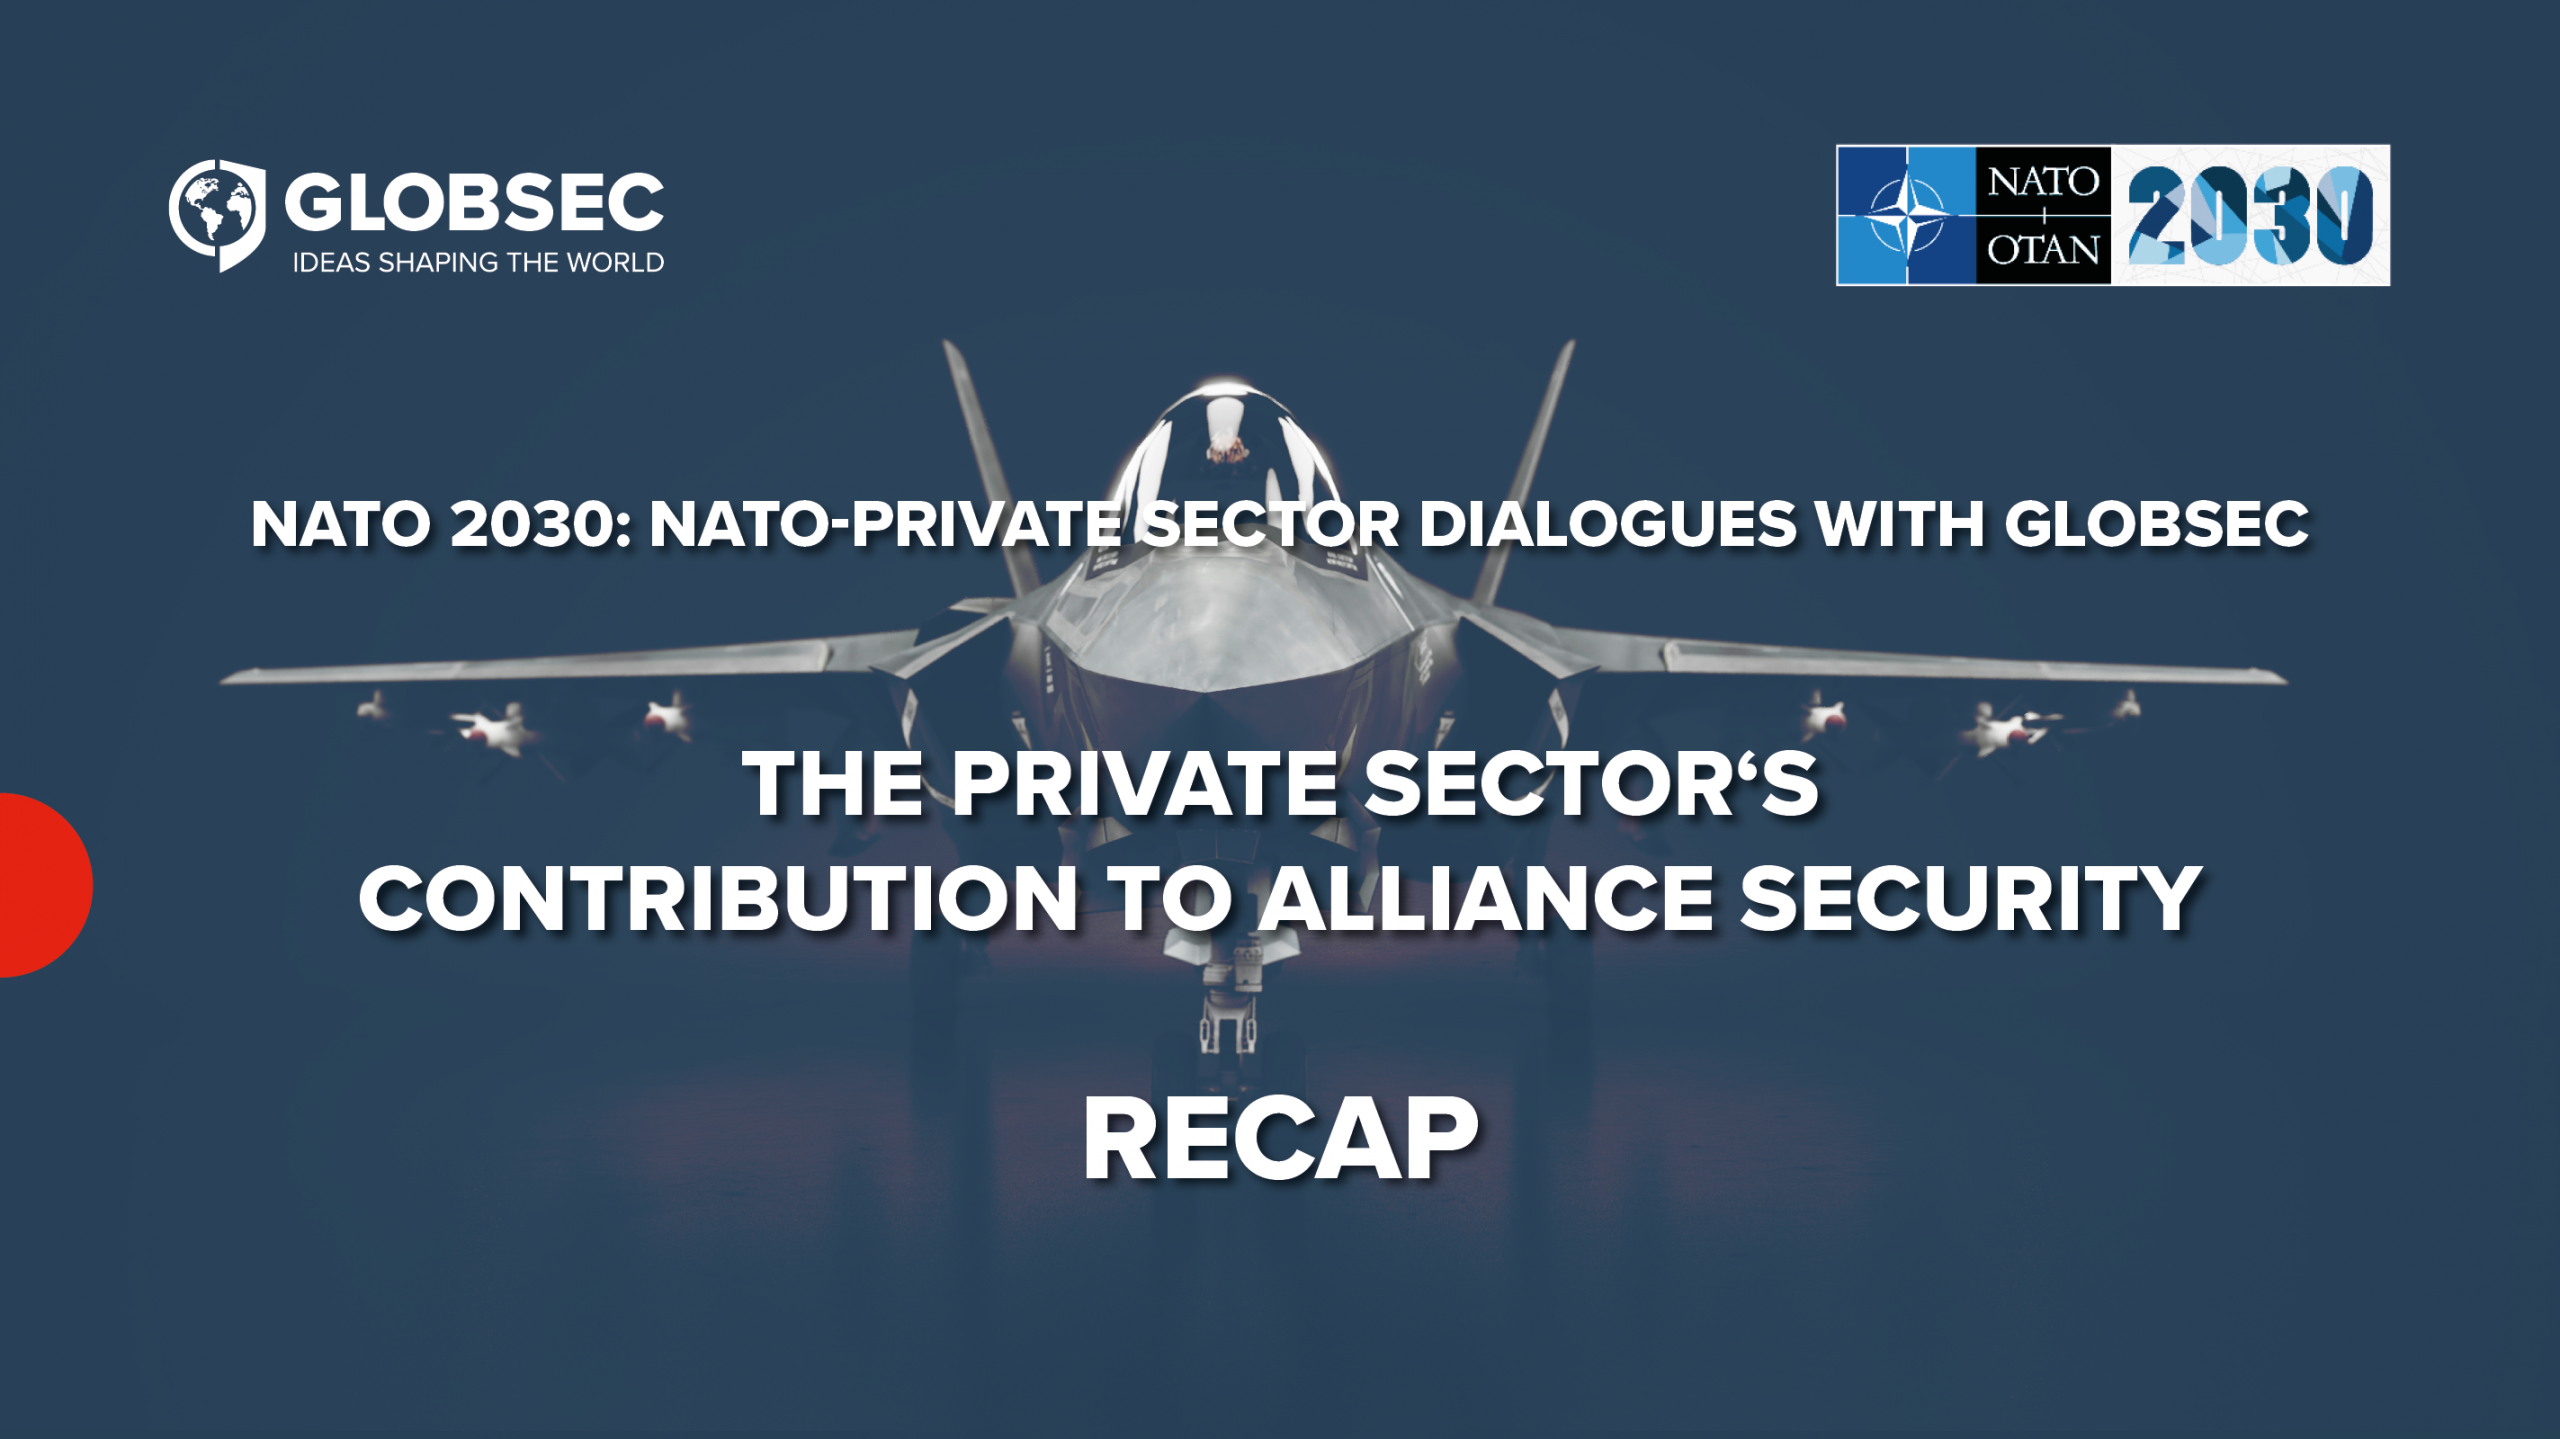 Recap: The Private Sector's Contribution to Alliance Security